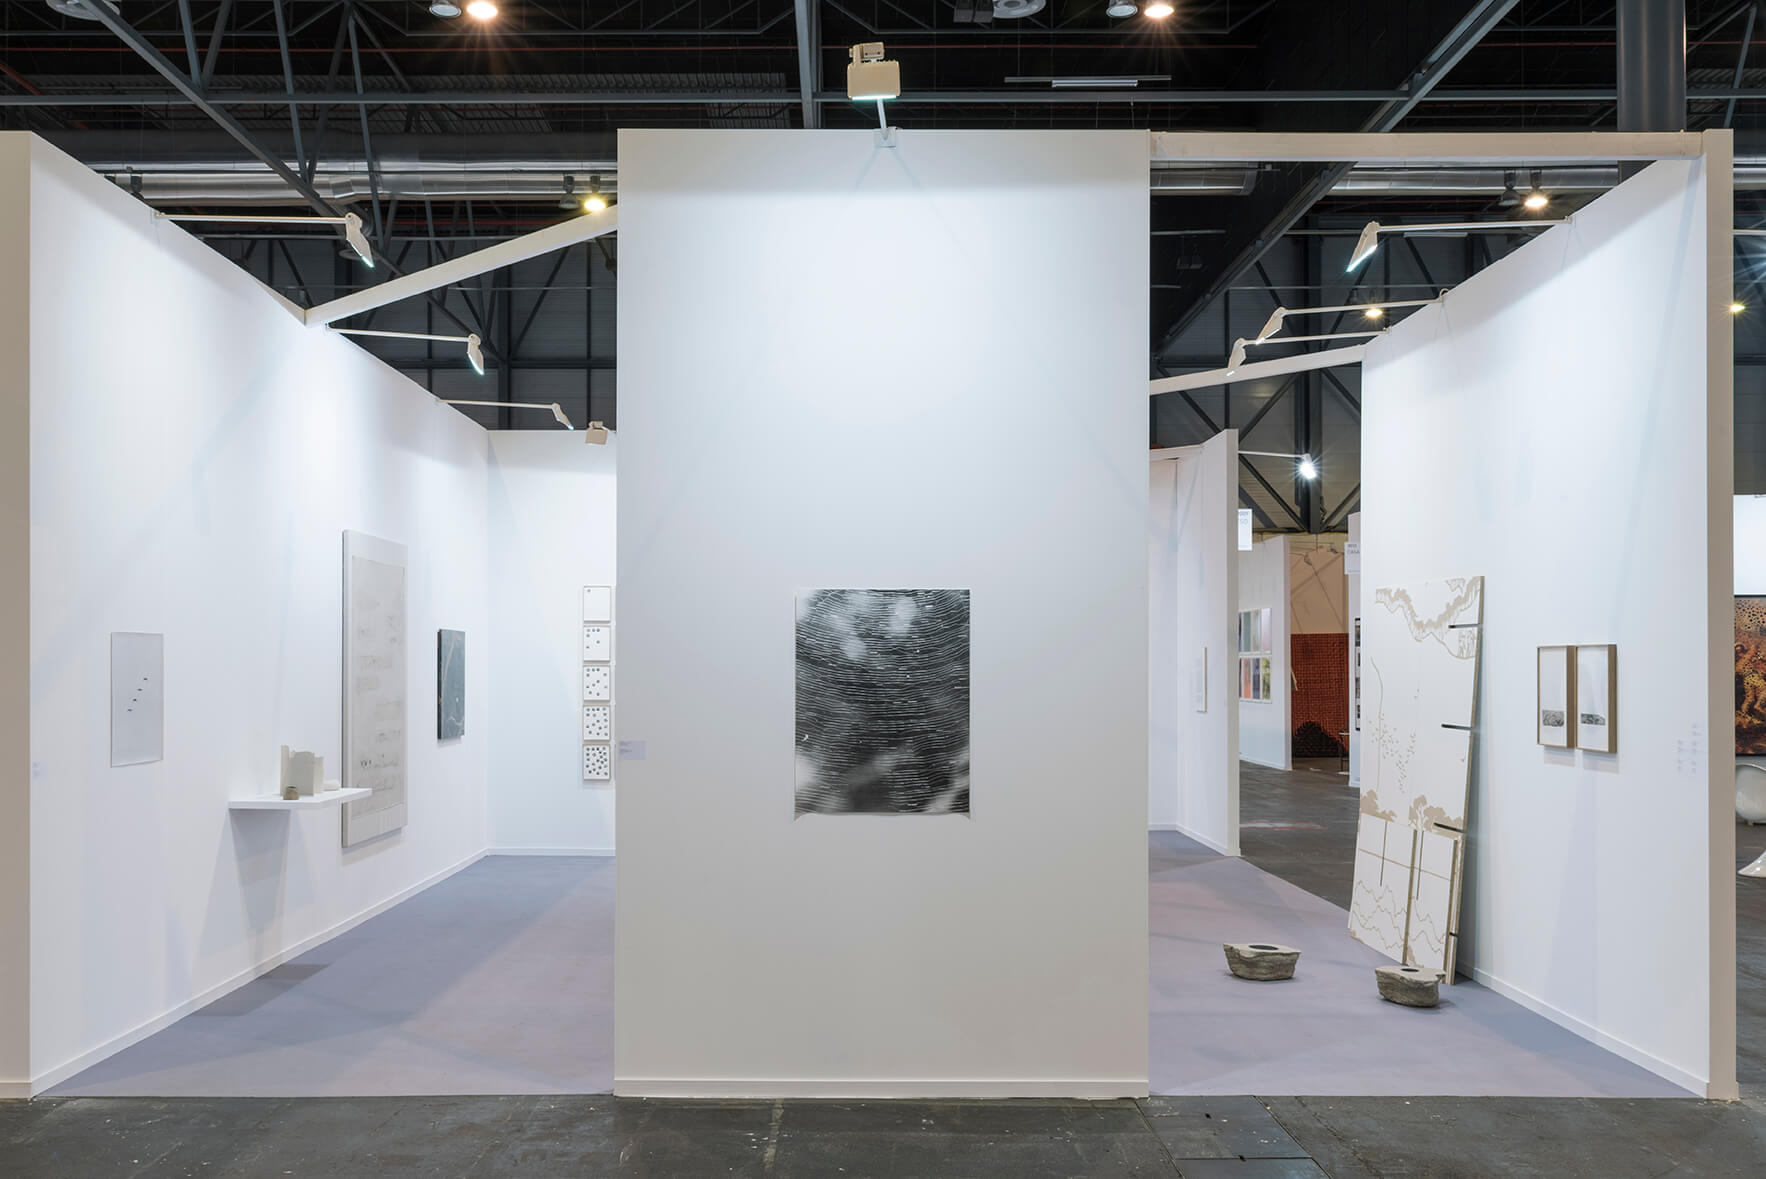 Installation view: ProjecteSD, Booth 9D09 | ARCO 2016 | ProjecteSD